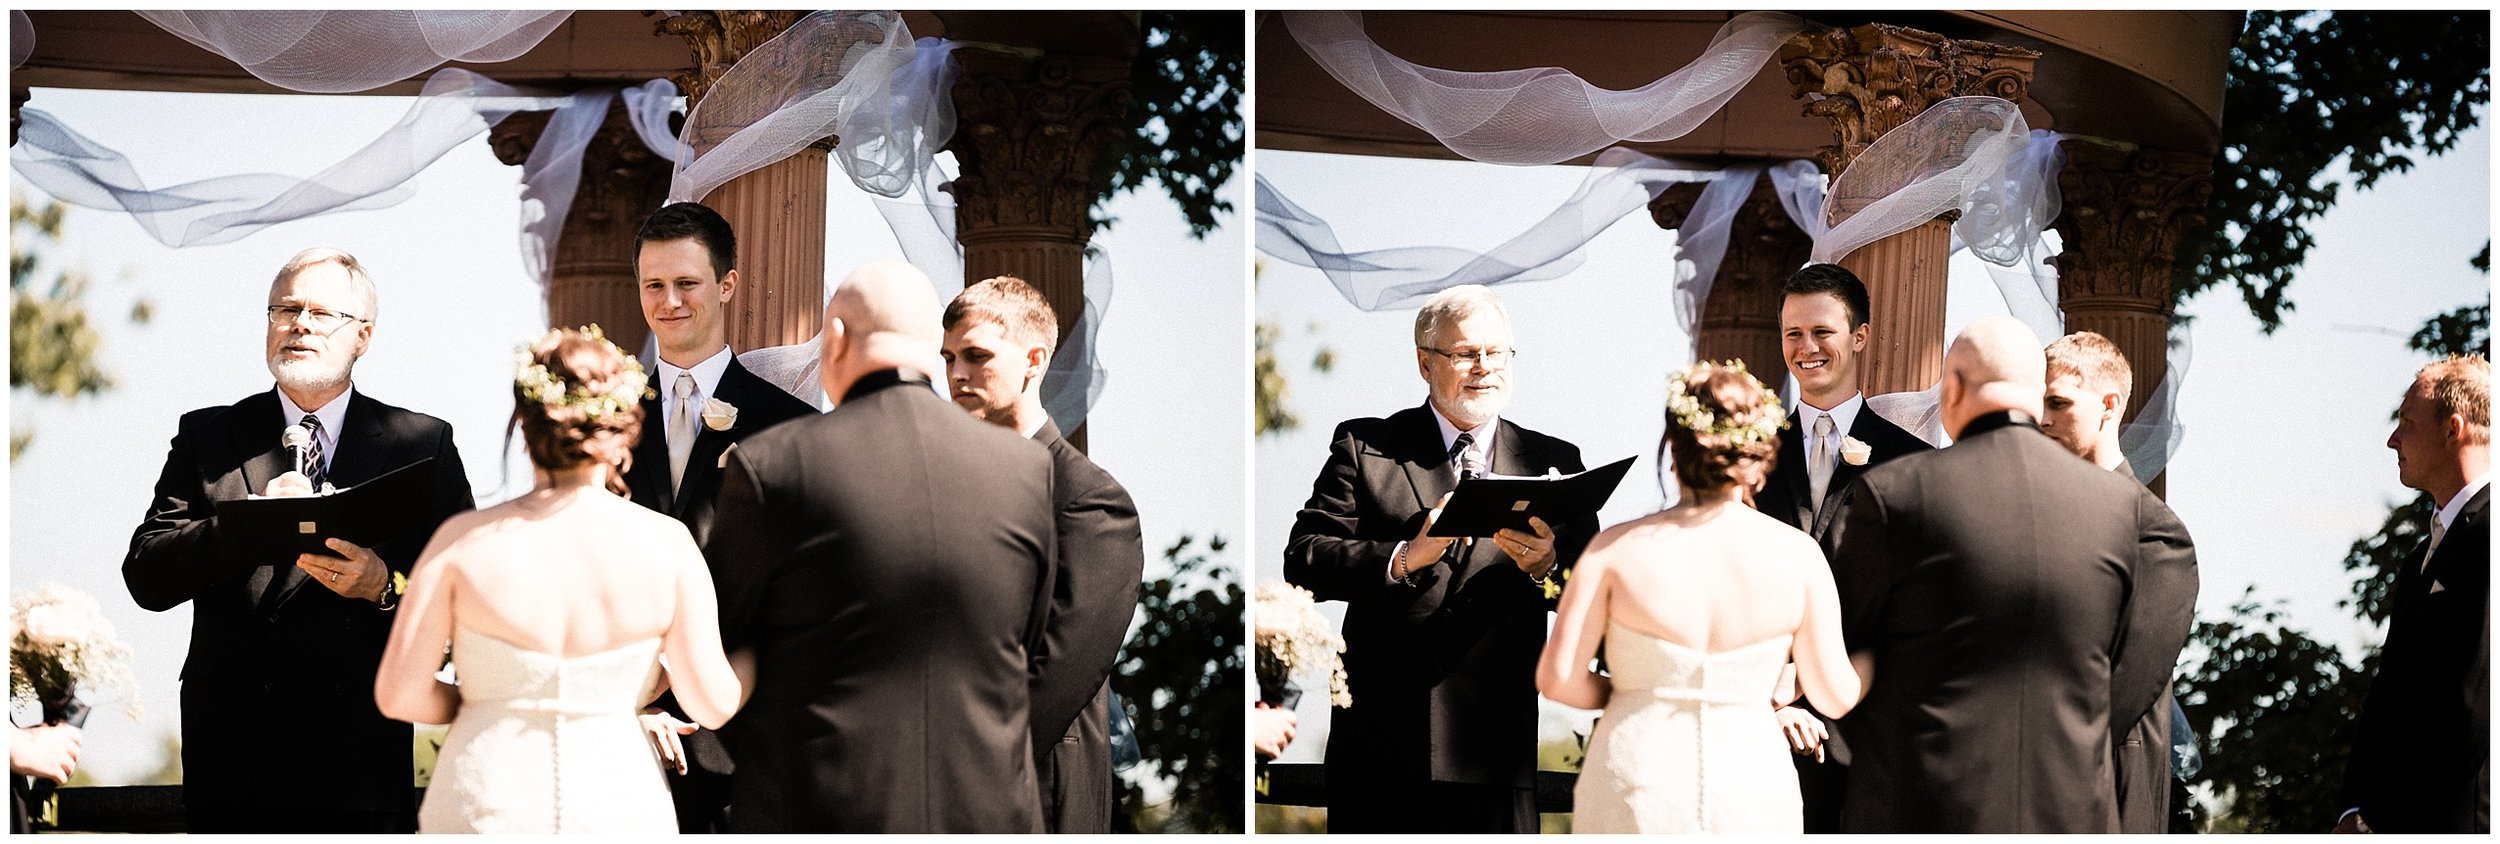 Chad + Ashley | Just Married #kyleepaigephotography_1347.jpg